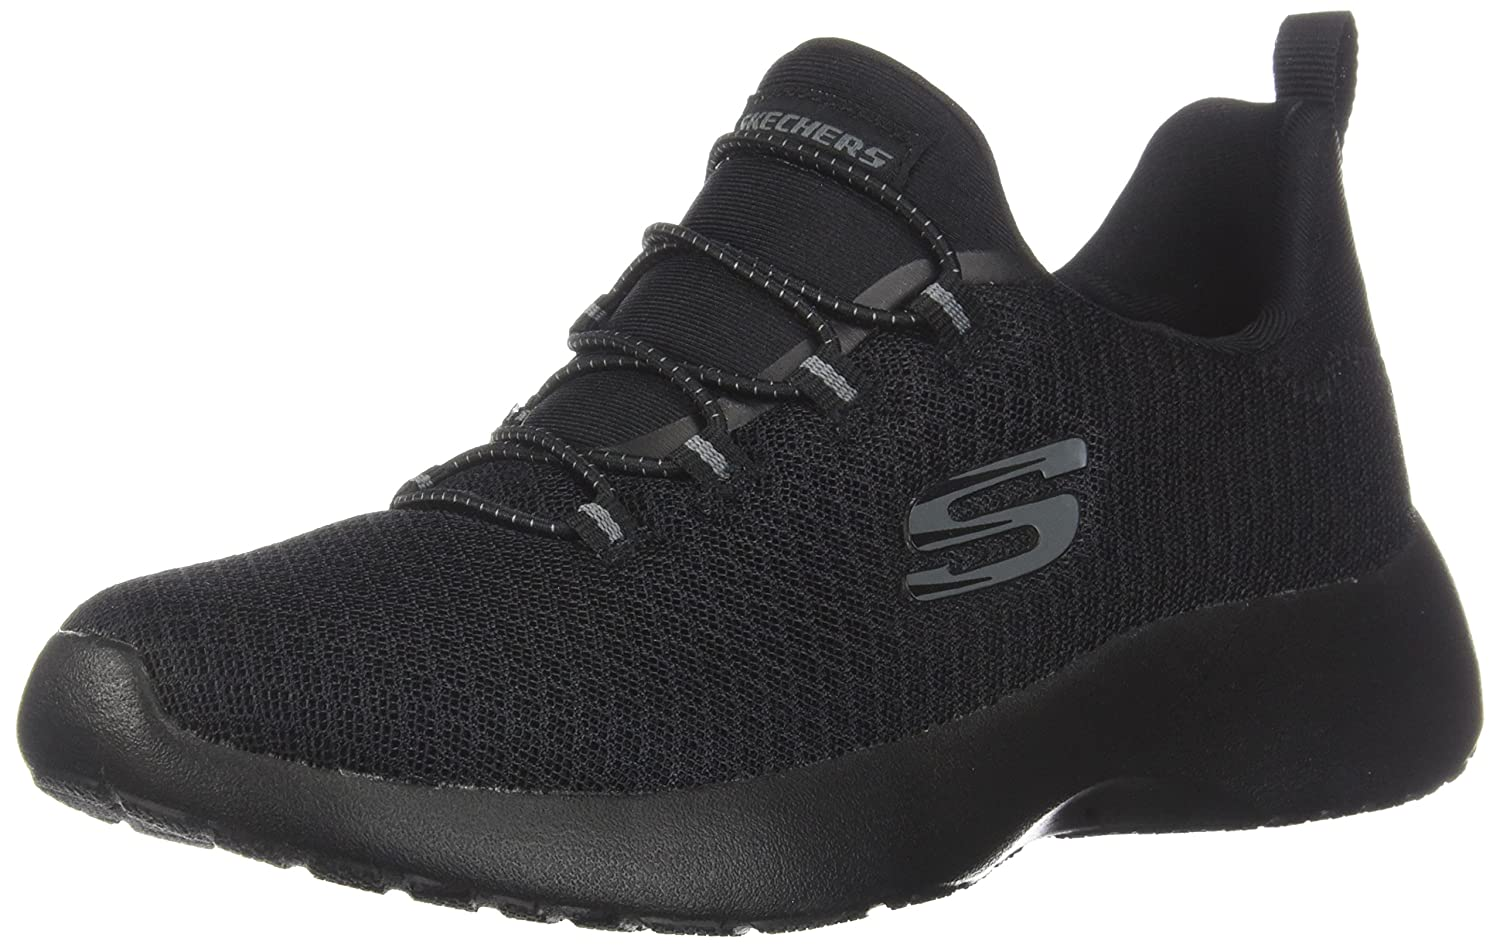 3b50feed6e08 Skechers Dynamight Womens Ladies Trainers Black Black - Black Black - UK  Sizes 3-8  Amazon.co.uk  Shoes   Bags